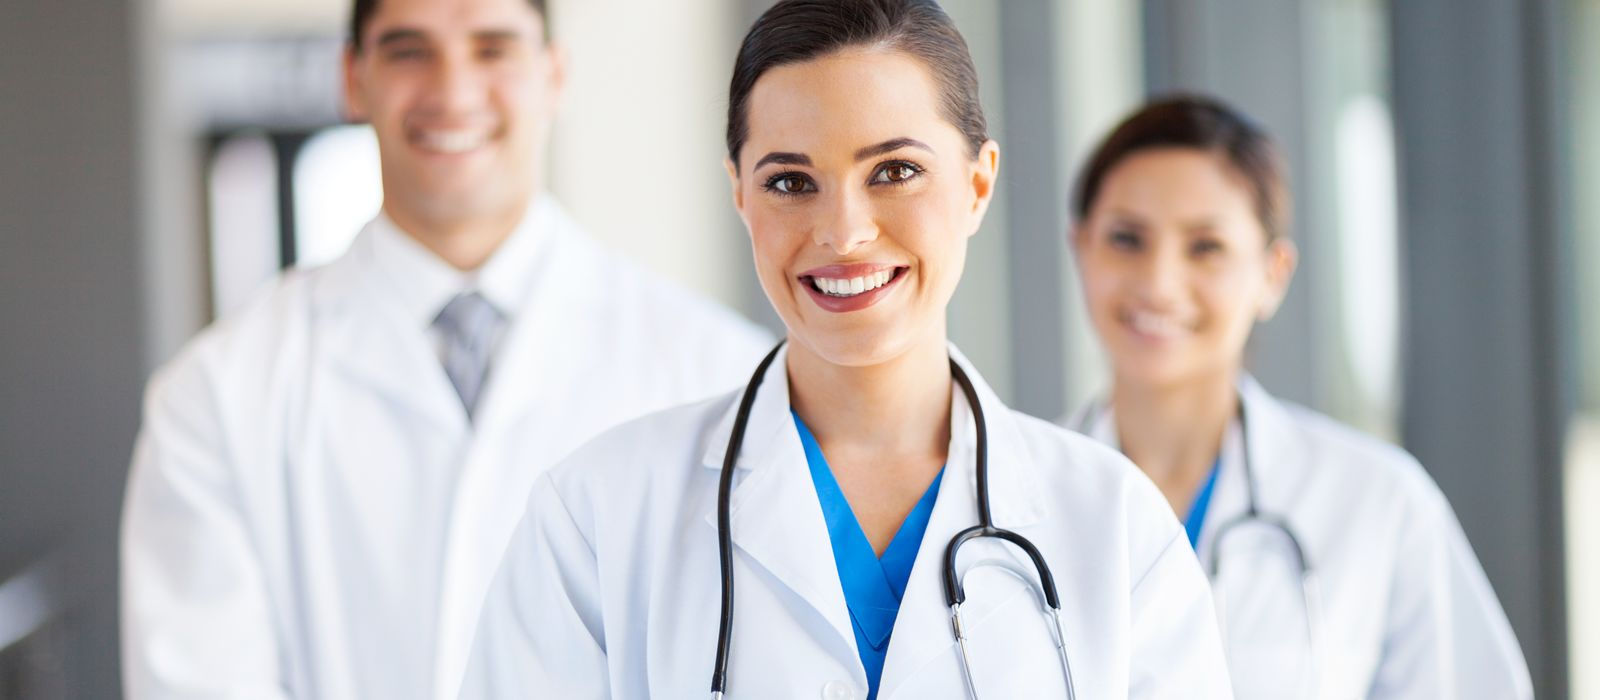 A Team Of Medical Professionals, To Take Care Of Your Health